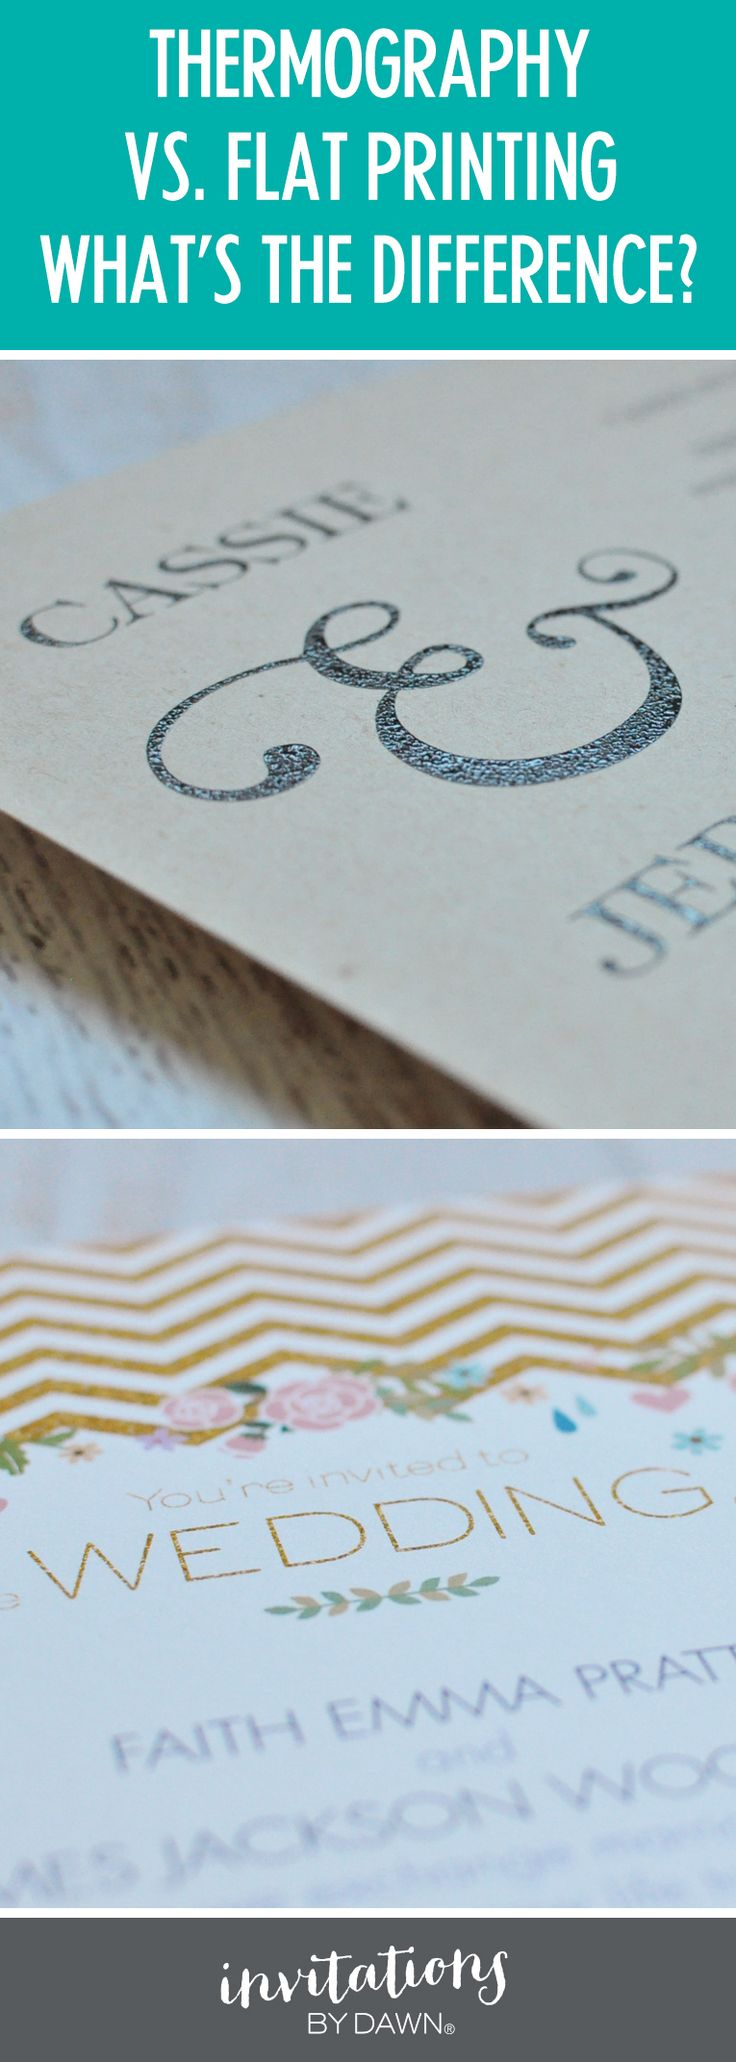 Digitally printed wedding invitations Whatu0027s the difference